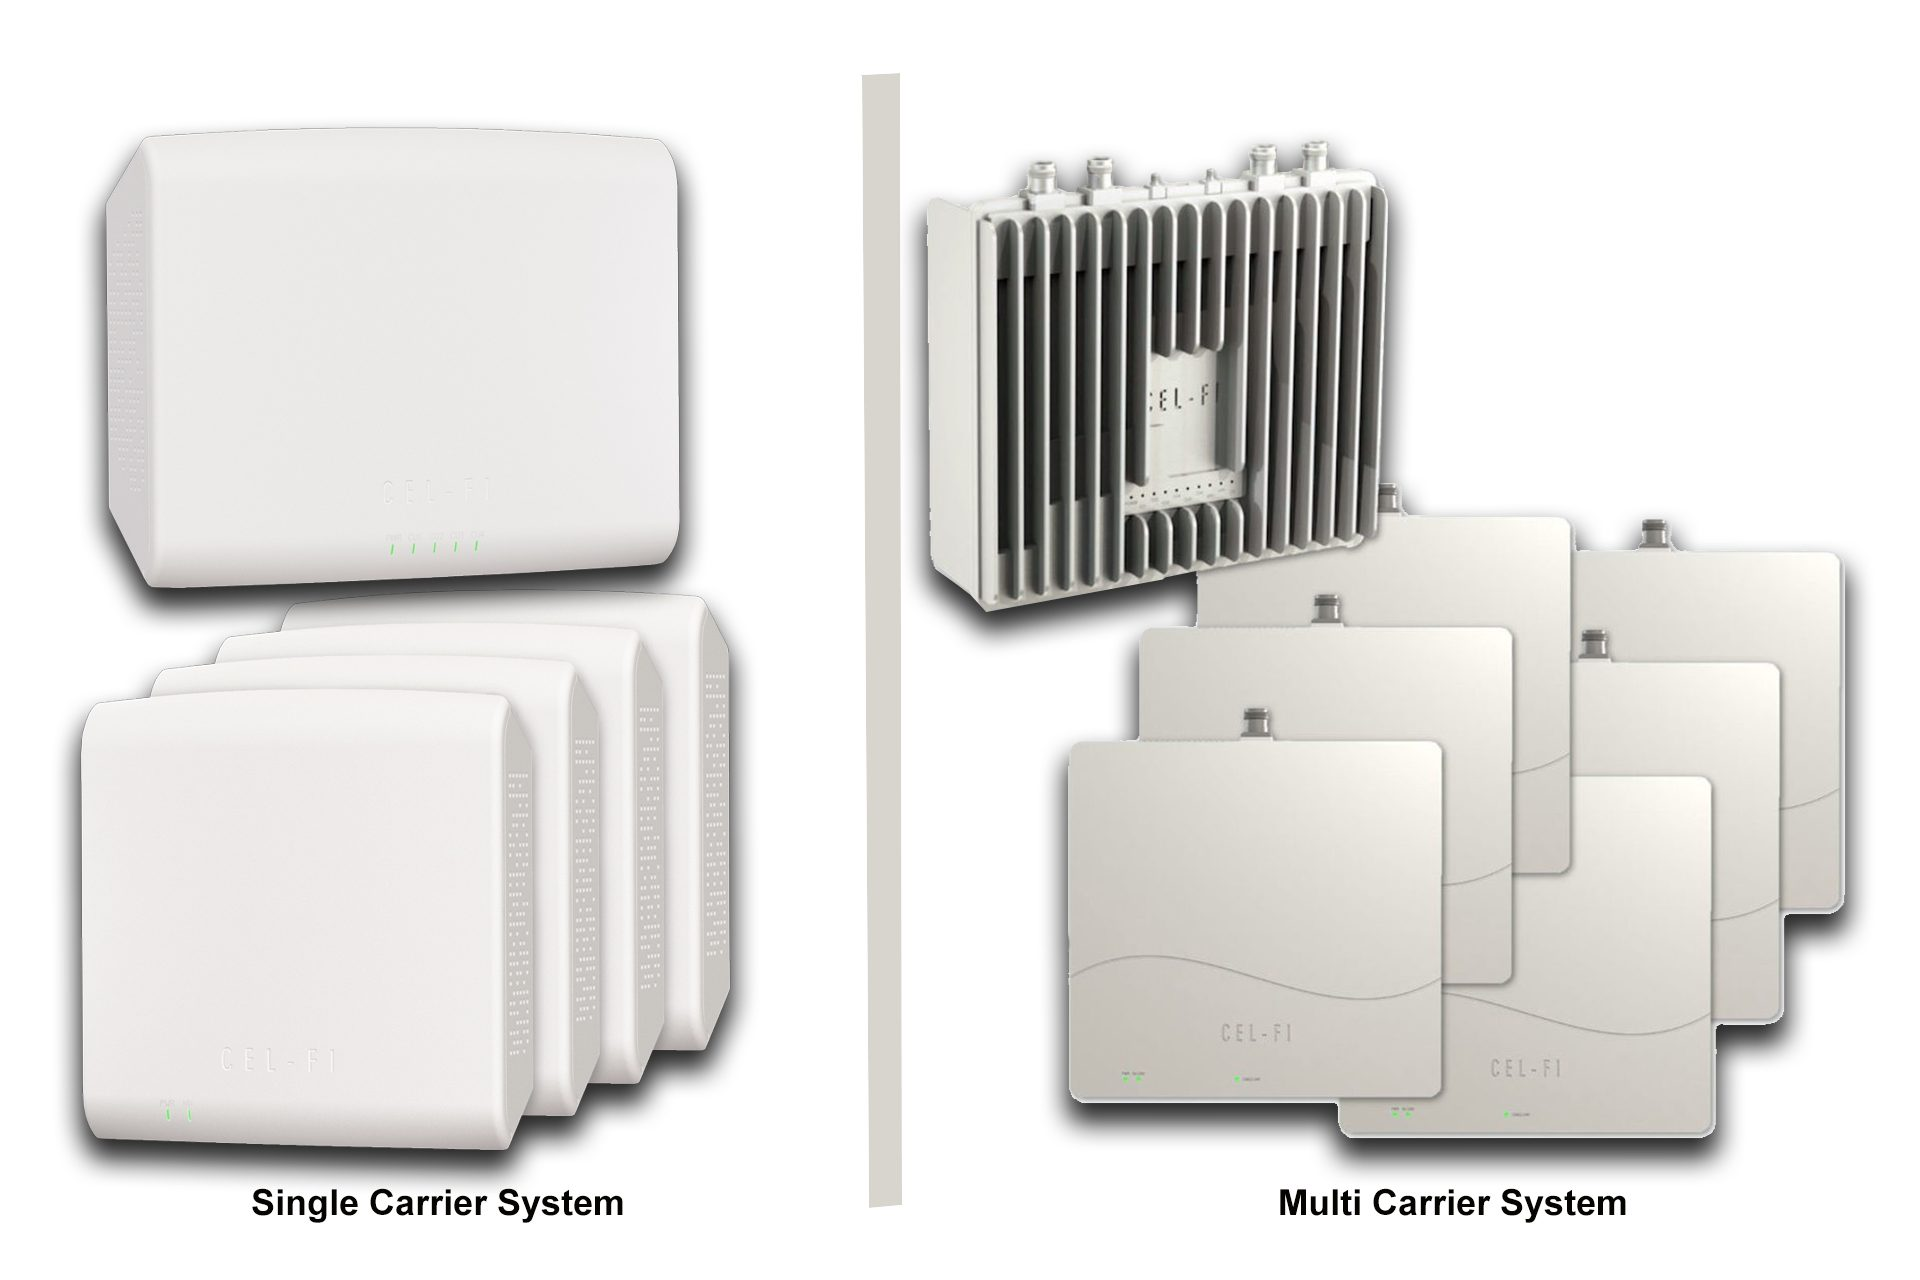 Above are two Nextivity Cel-Fi systems with four antennas working much like a residential WiFi router/switch with multiple access points, offering you cellular coverage.  Either system can offer signal from a single or multiple carriers.